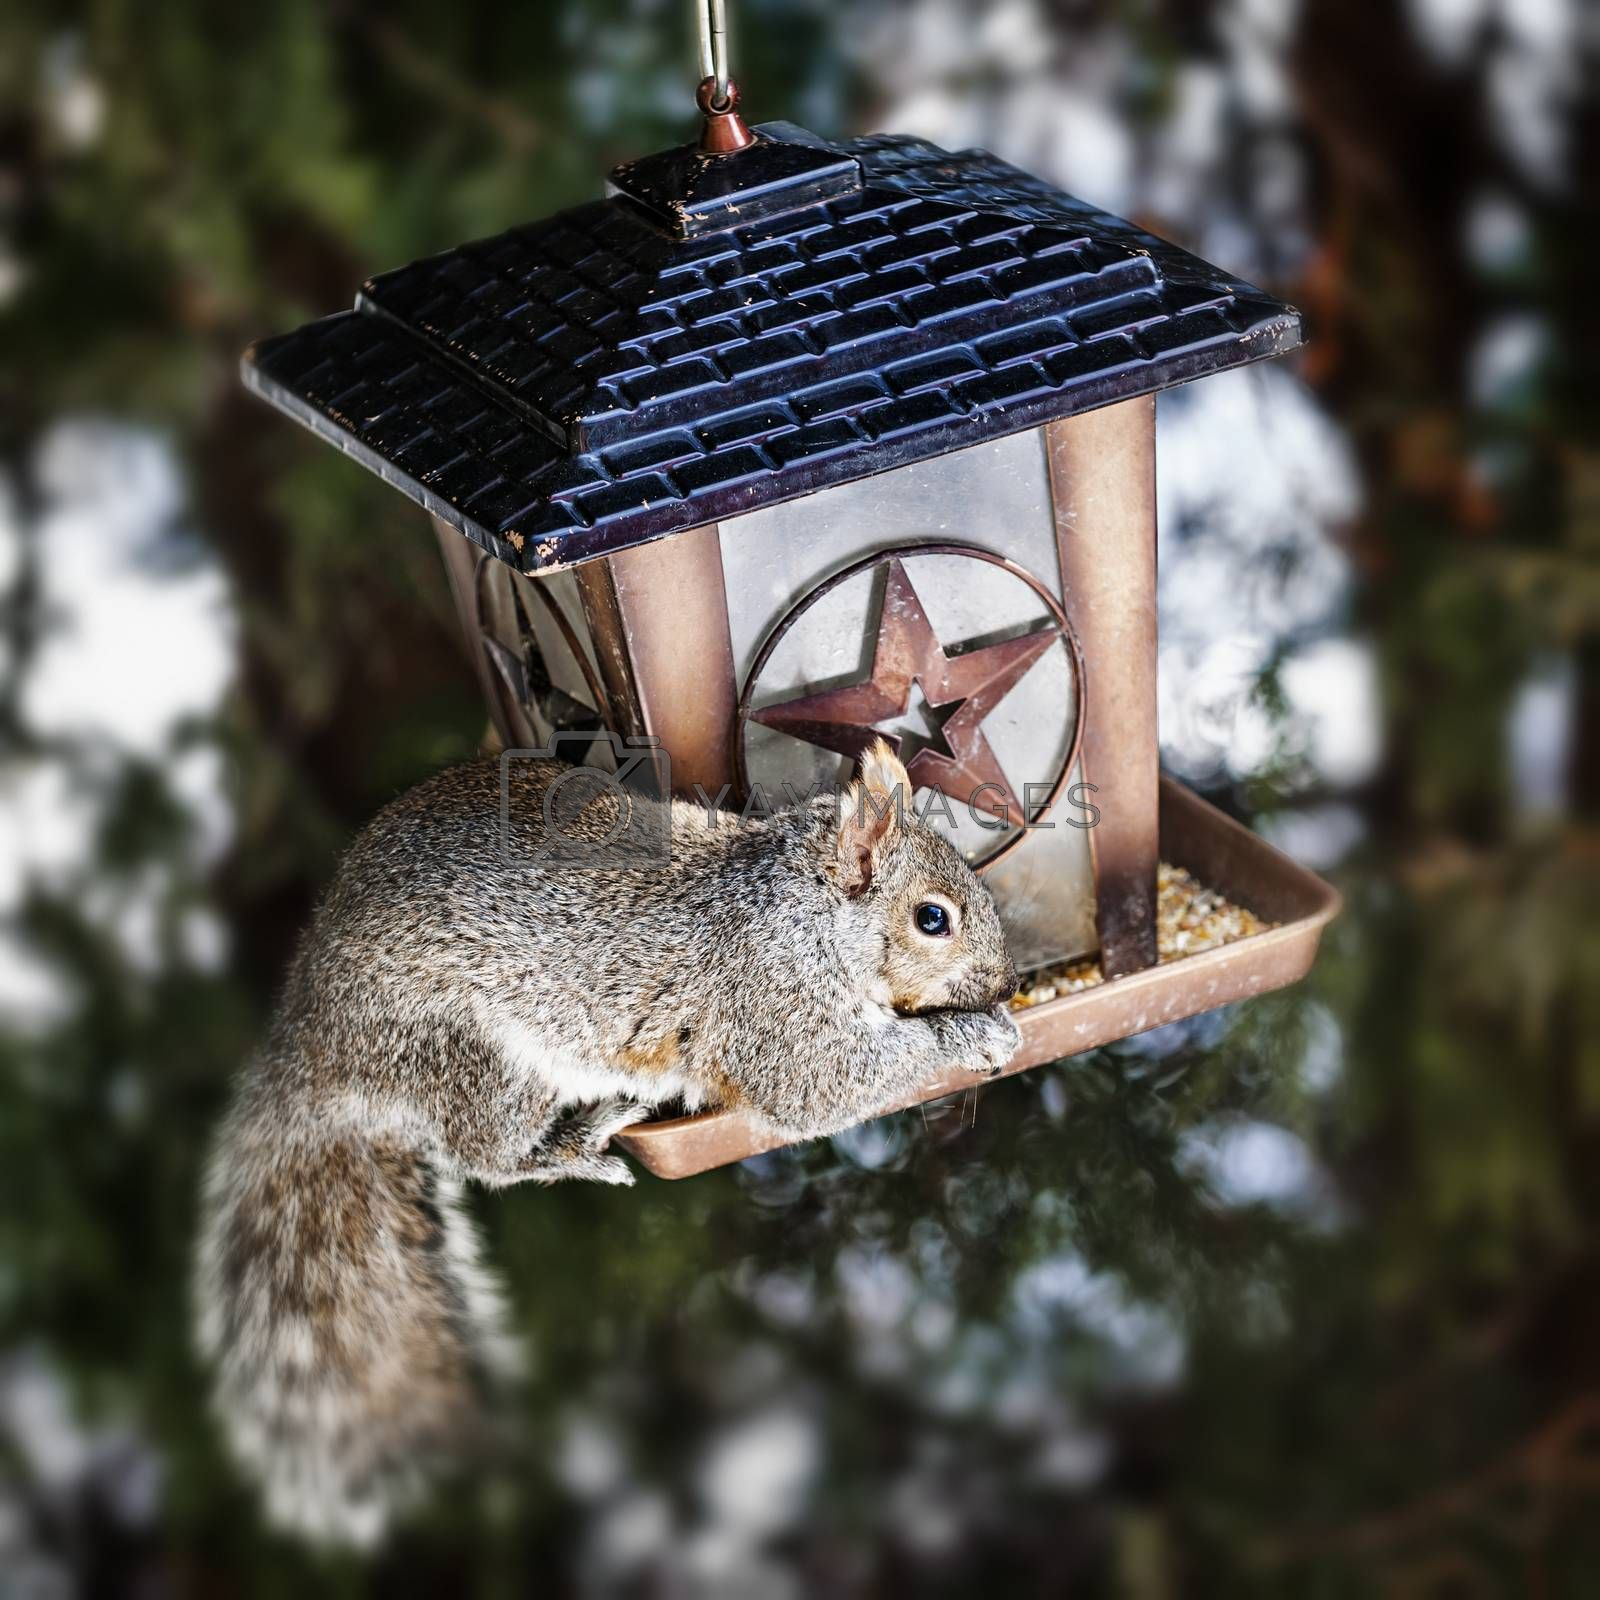 Gray squirrel sitting on bird feeder and eating seeds